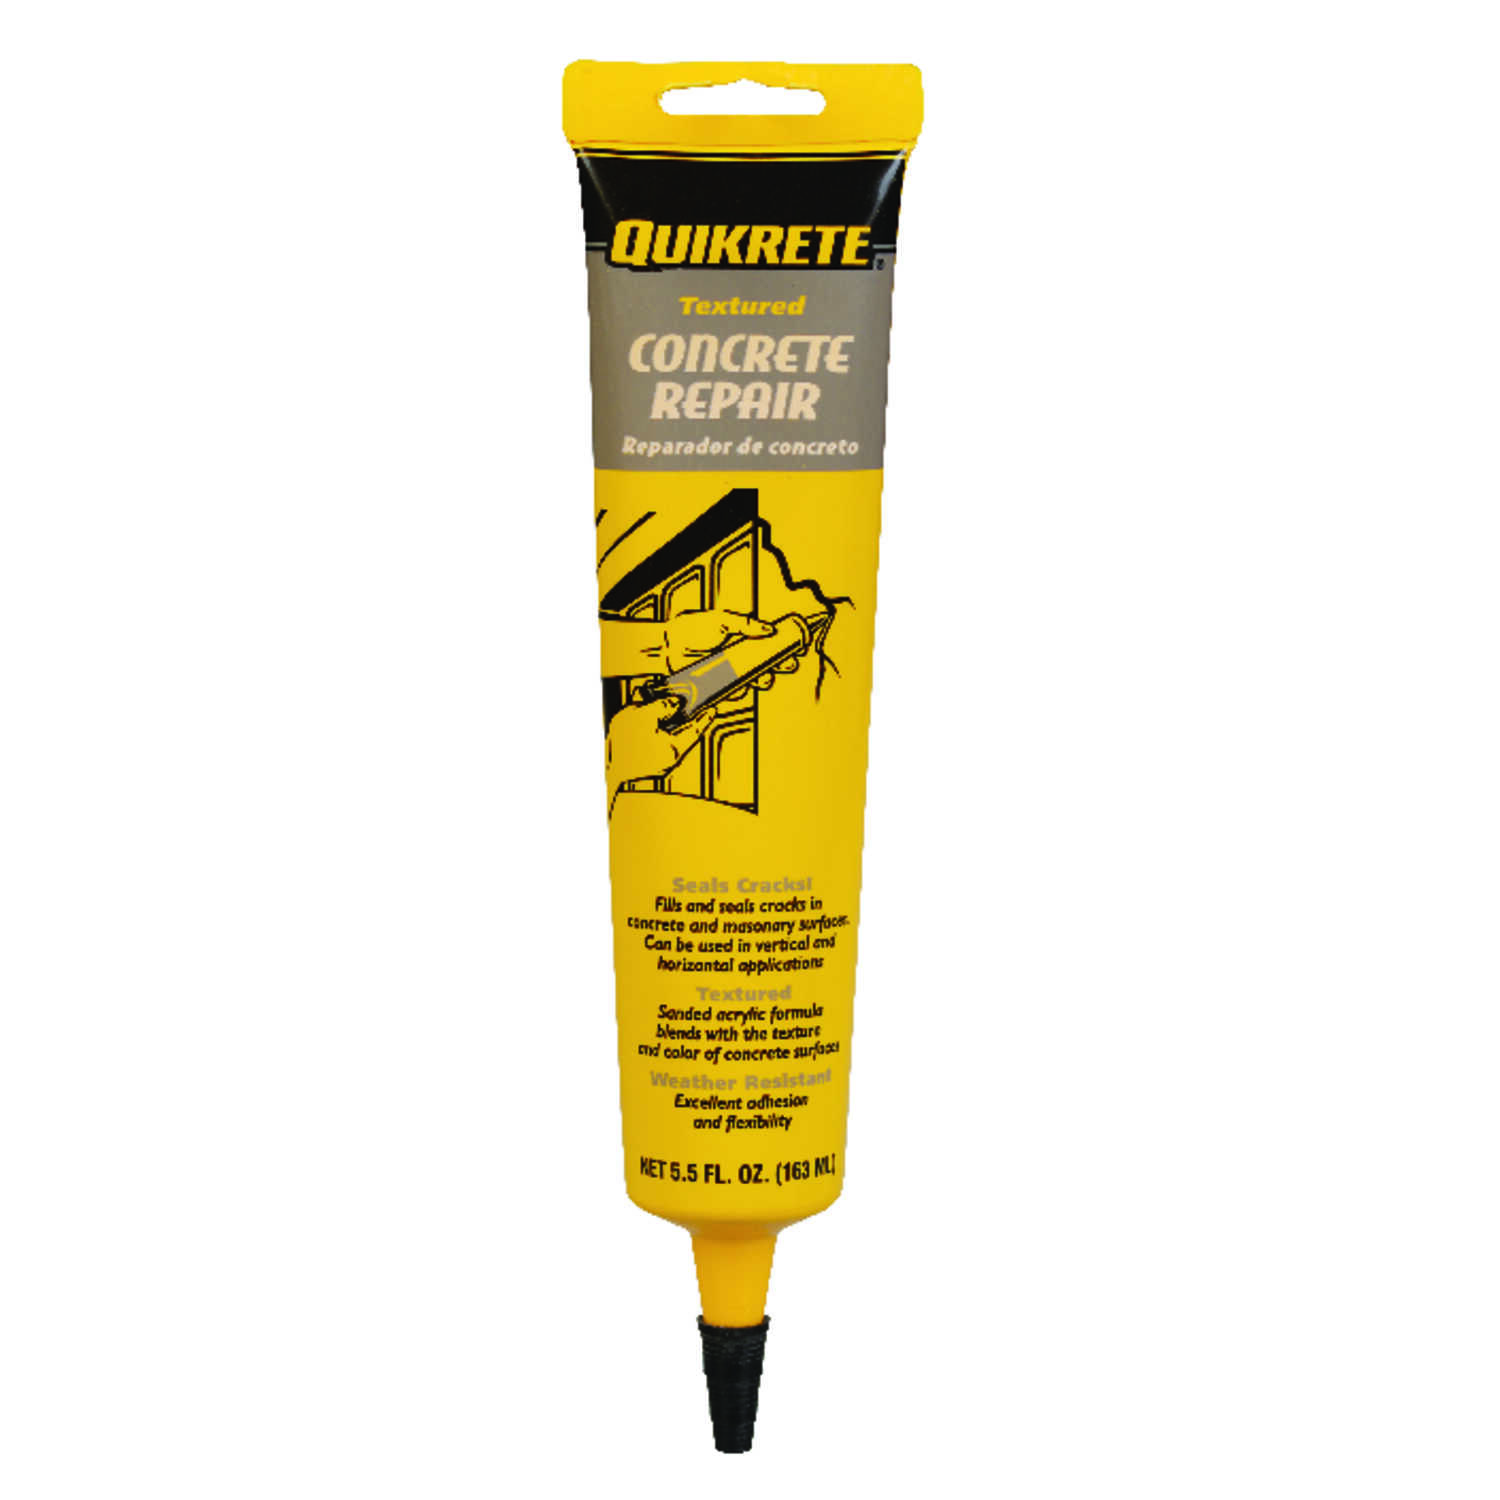 Quikrete  Textured  Concrete Repair  5.5 oz.